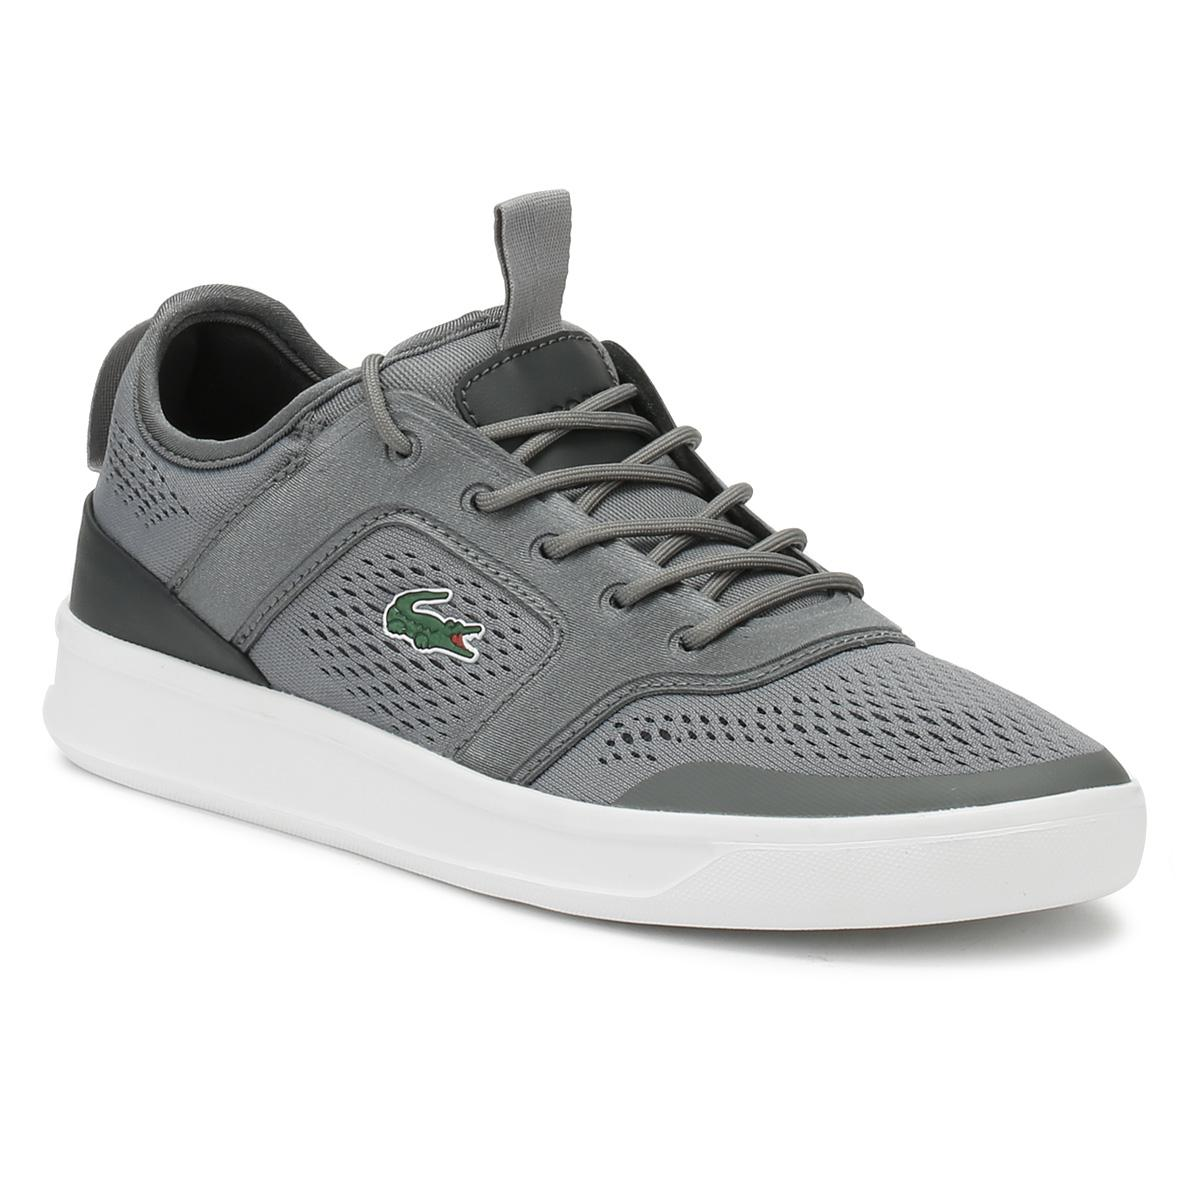 218 1 Lacoste Dark Grey Trainers Mens Light in for Gray Explorateur wHqXpR